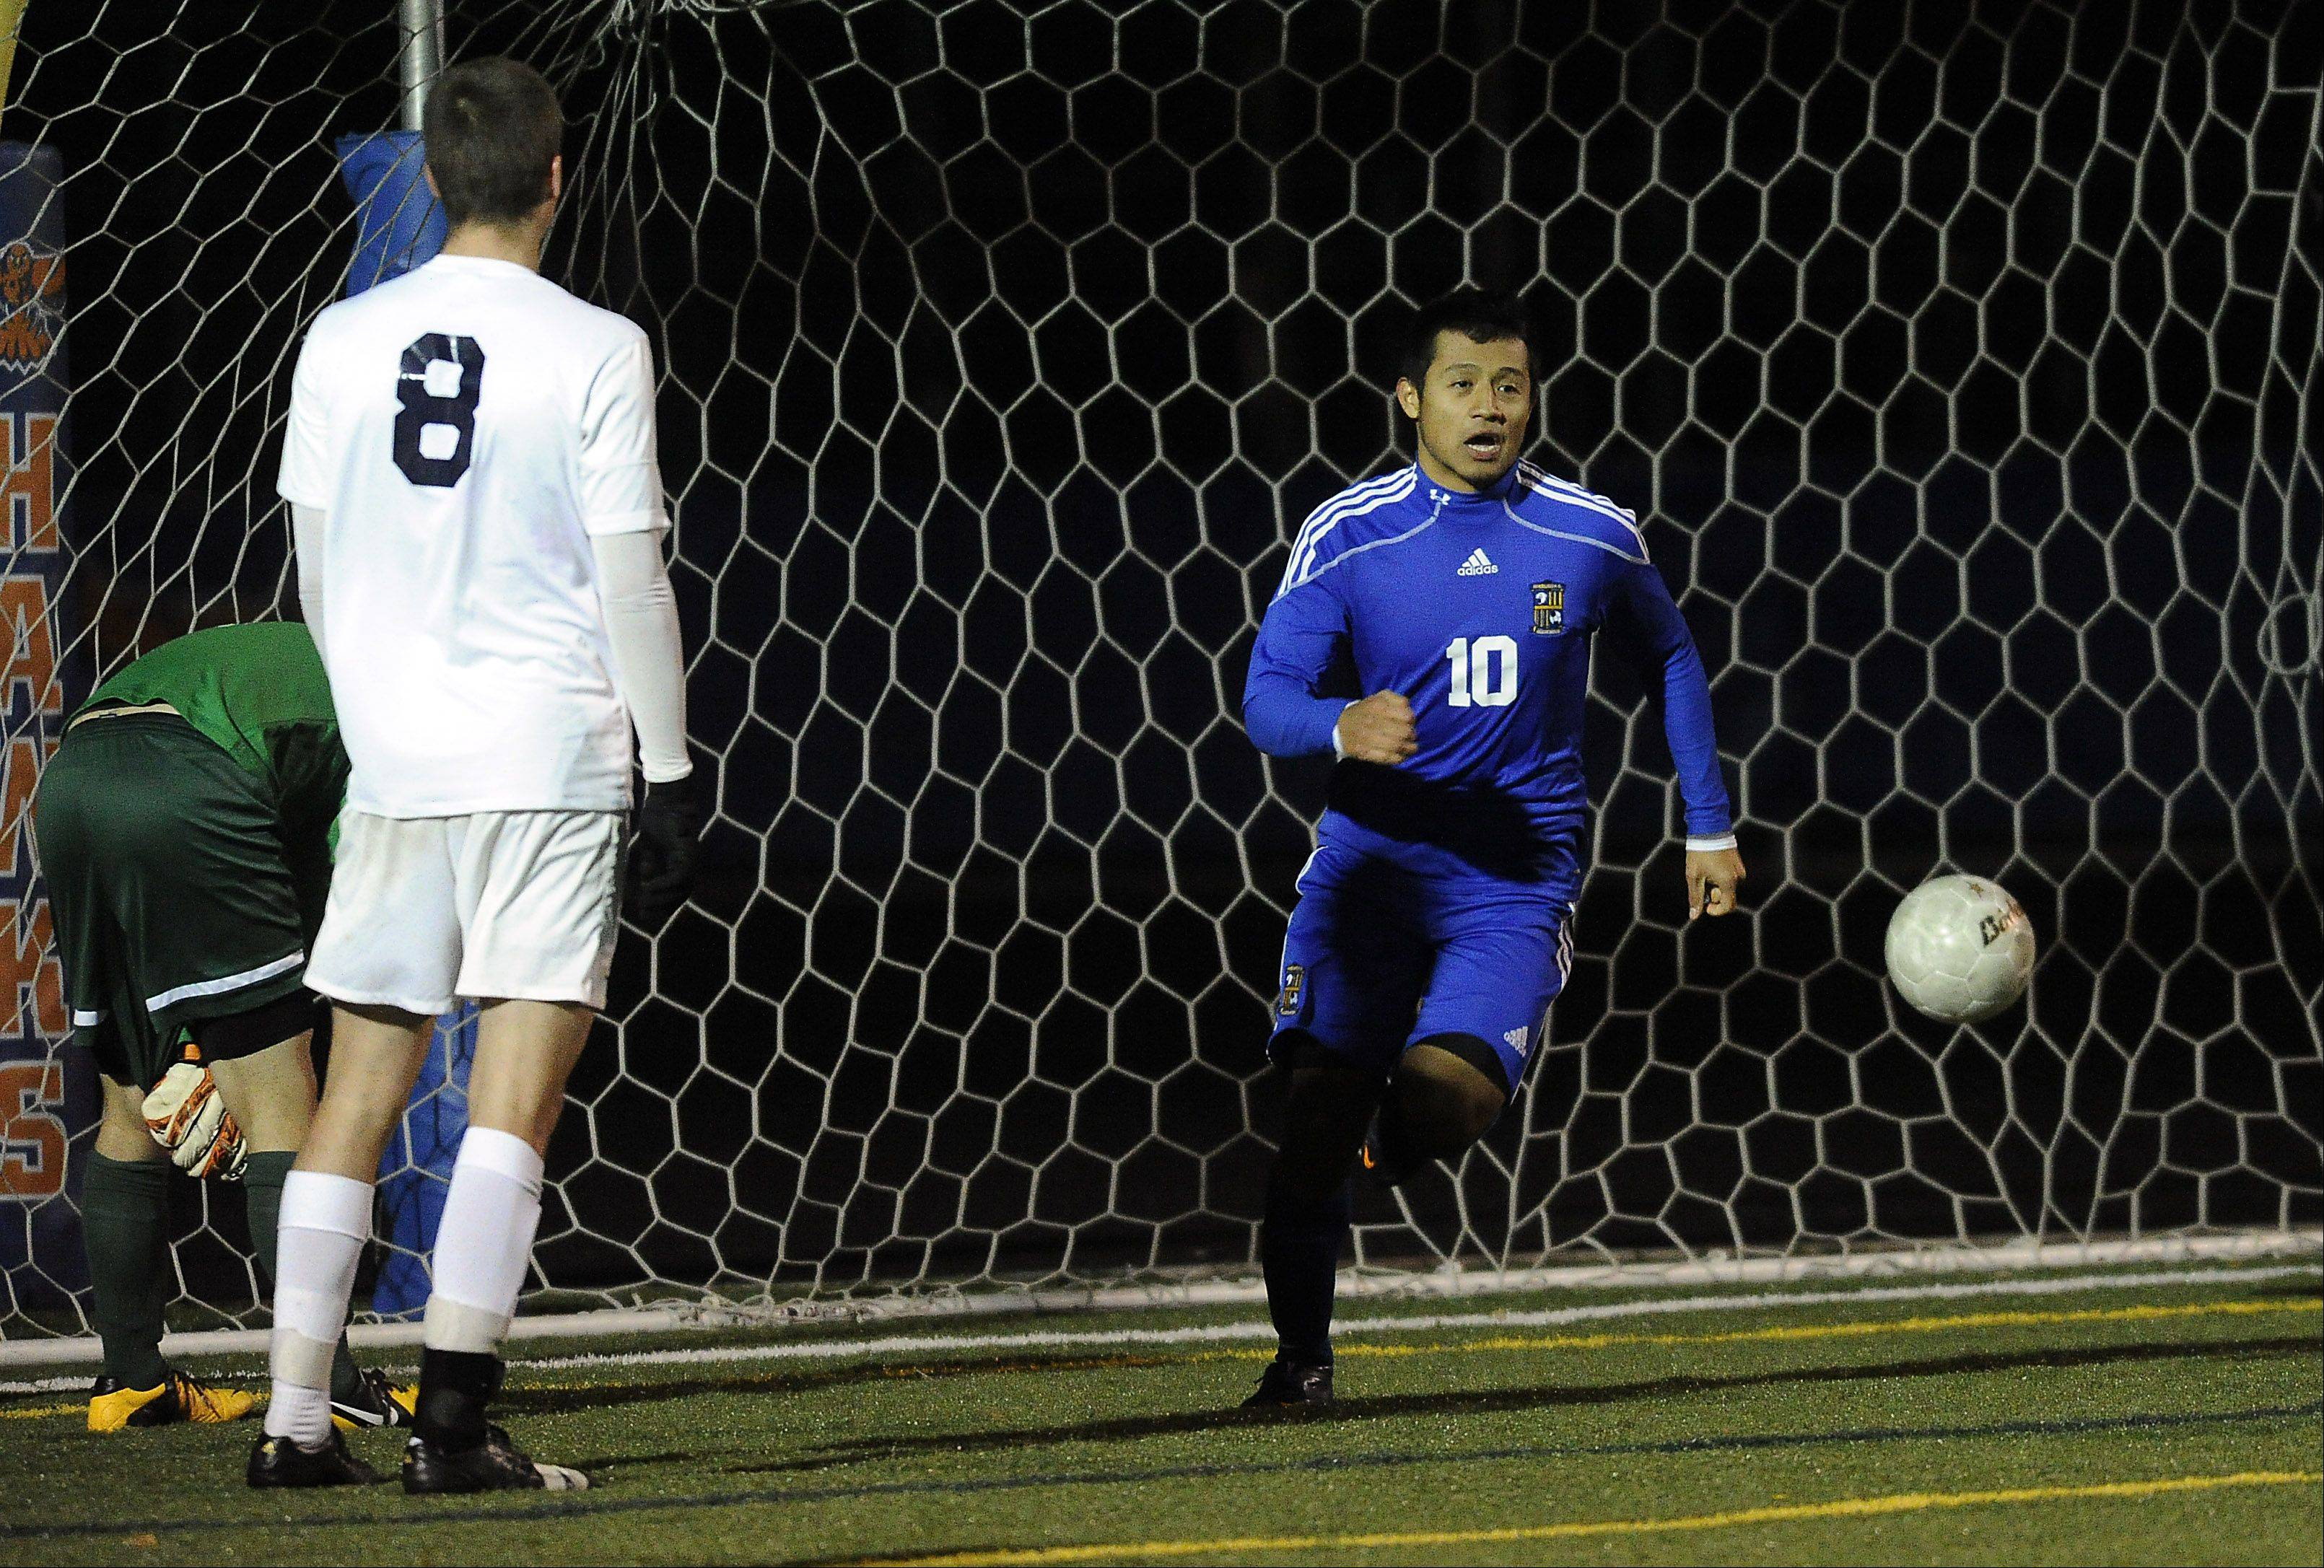 Wheeling's Ivan Mancilla scores the third goal of the game as Lake Park's Rike Tithof-Steere looks on in the second half of the Class 3A boys soccer state semifinals at Hoffman Estates on Friday.